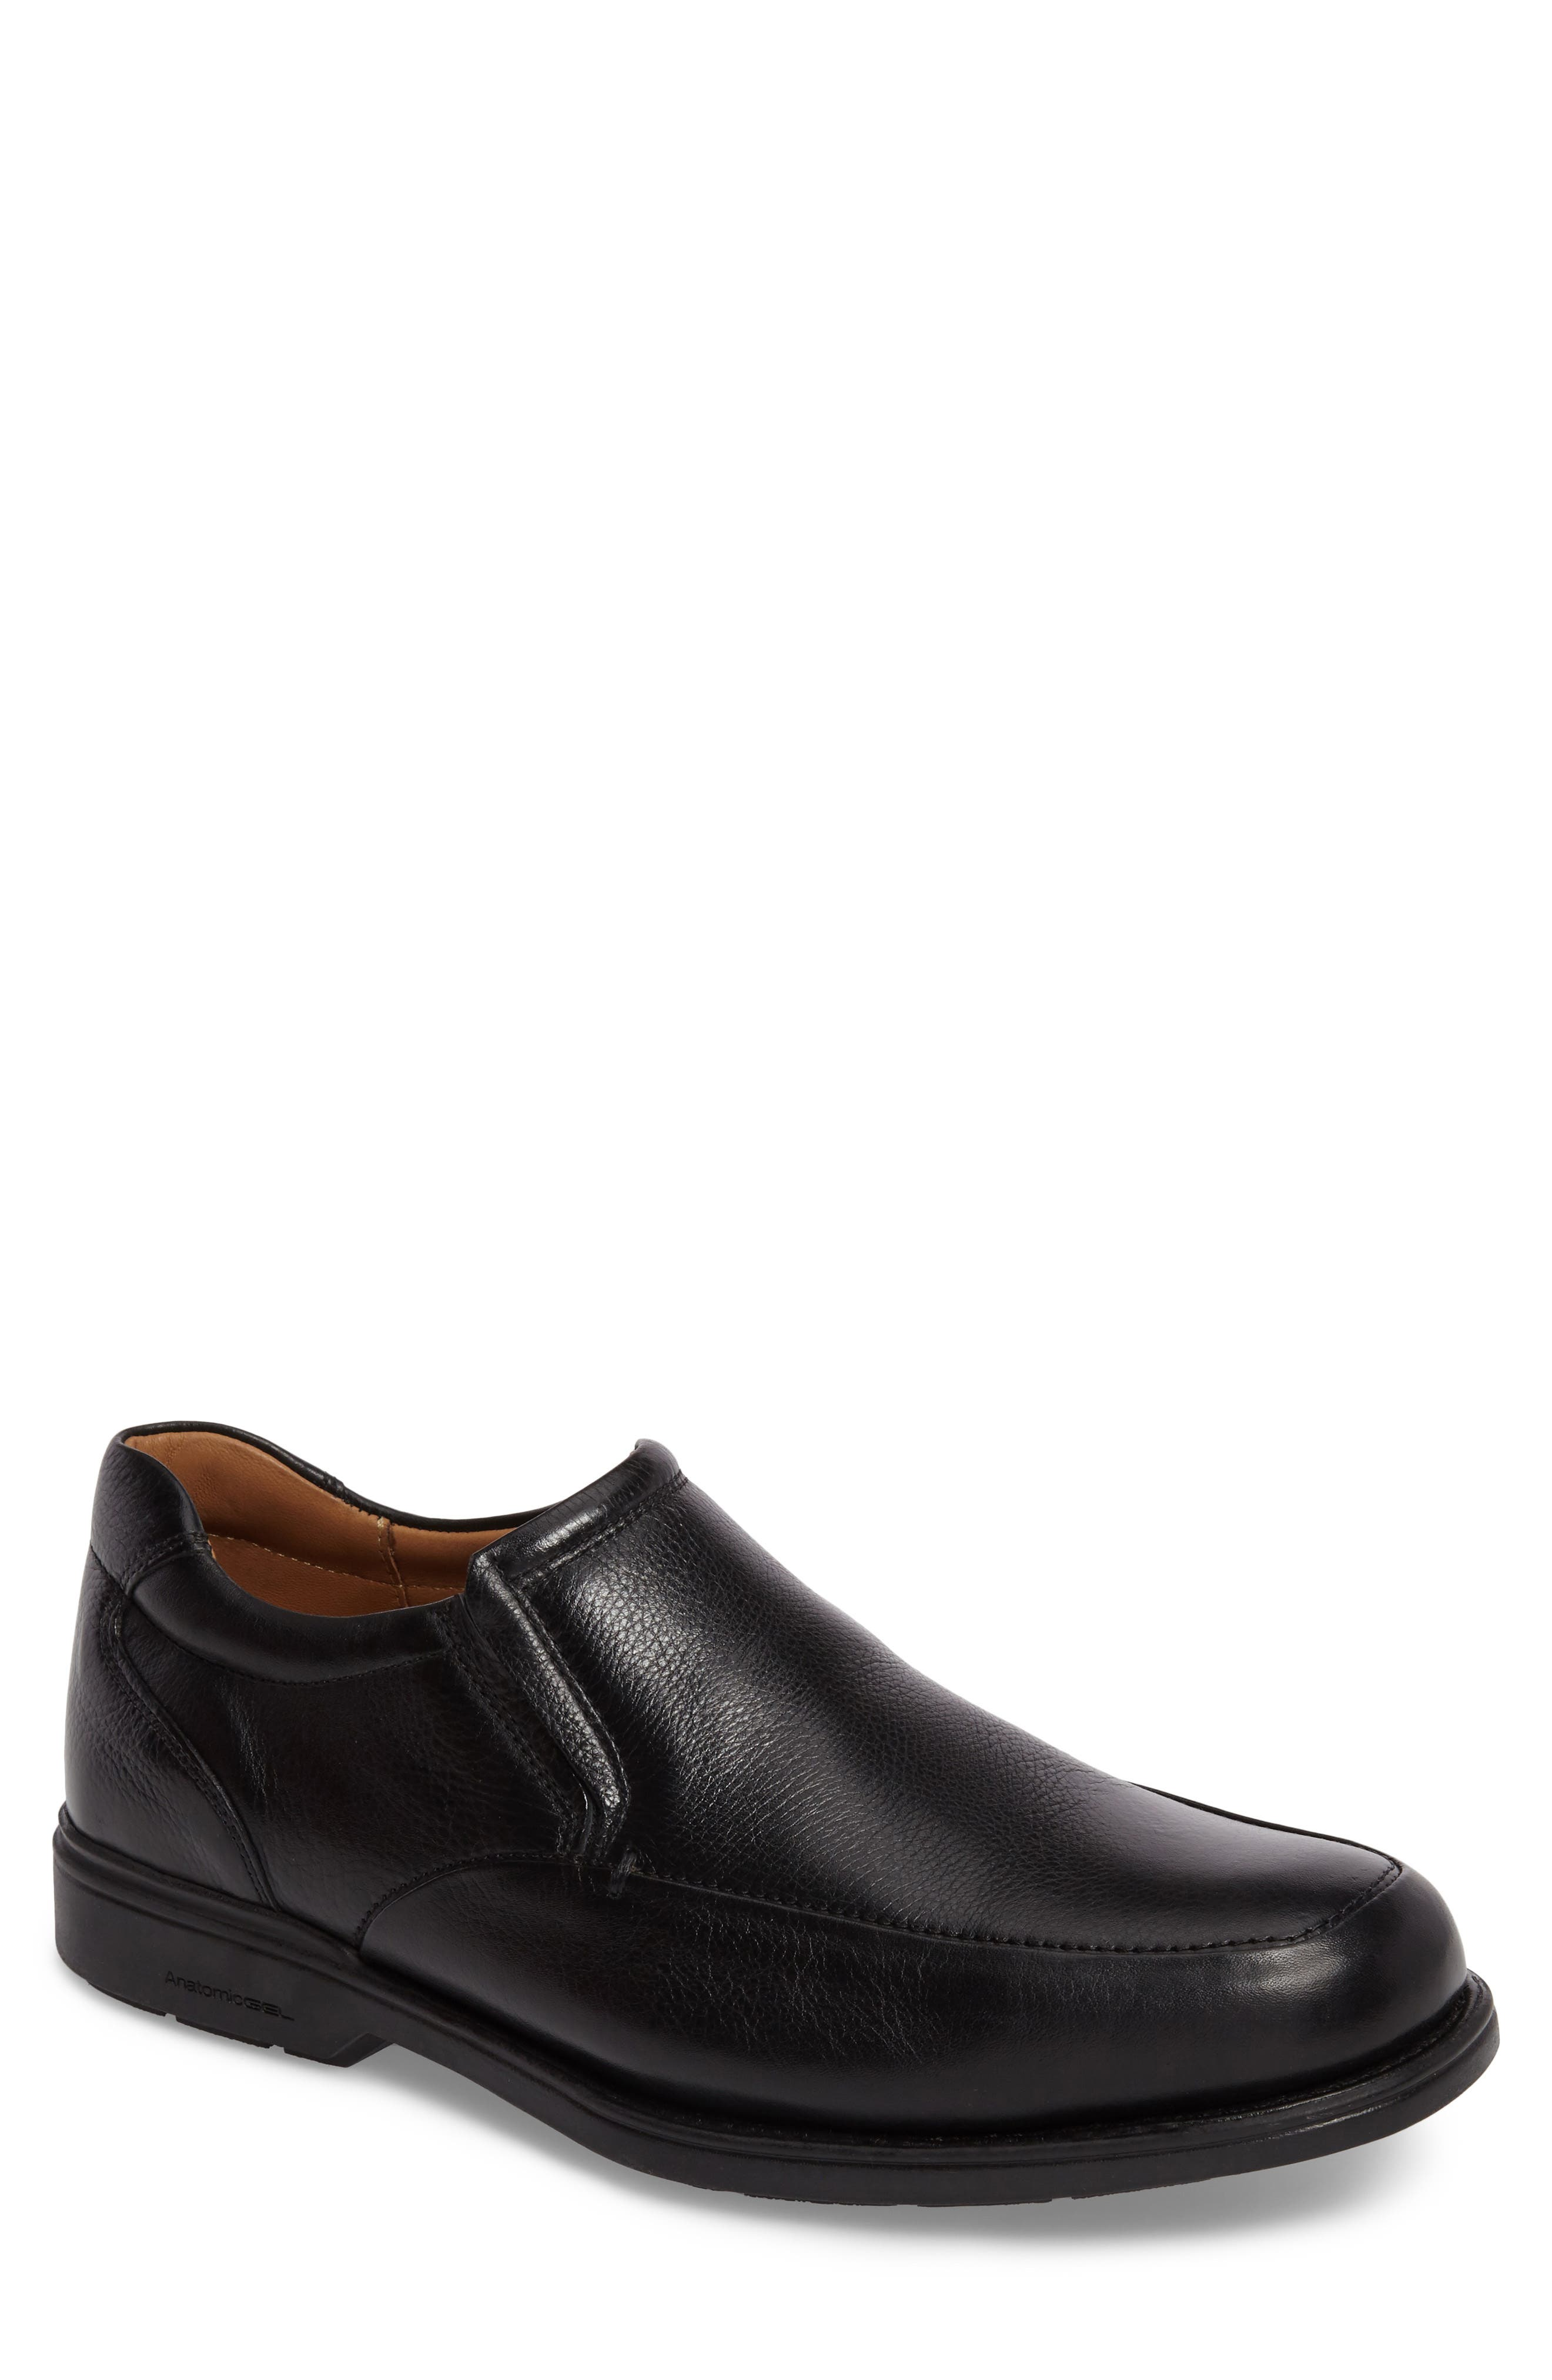 Anatomic & Co Itabuna Venetian Loafer (Men)